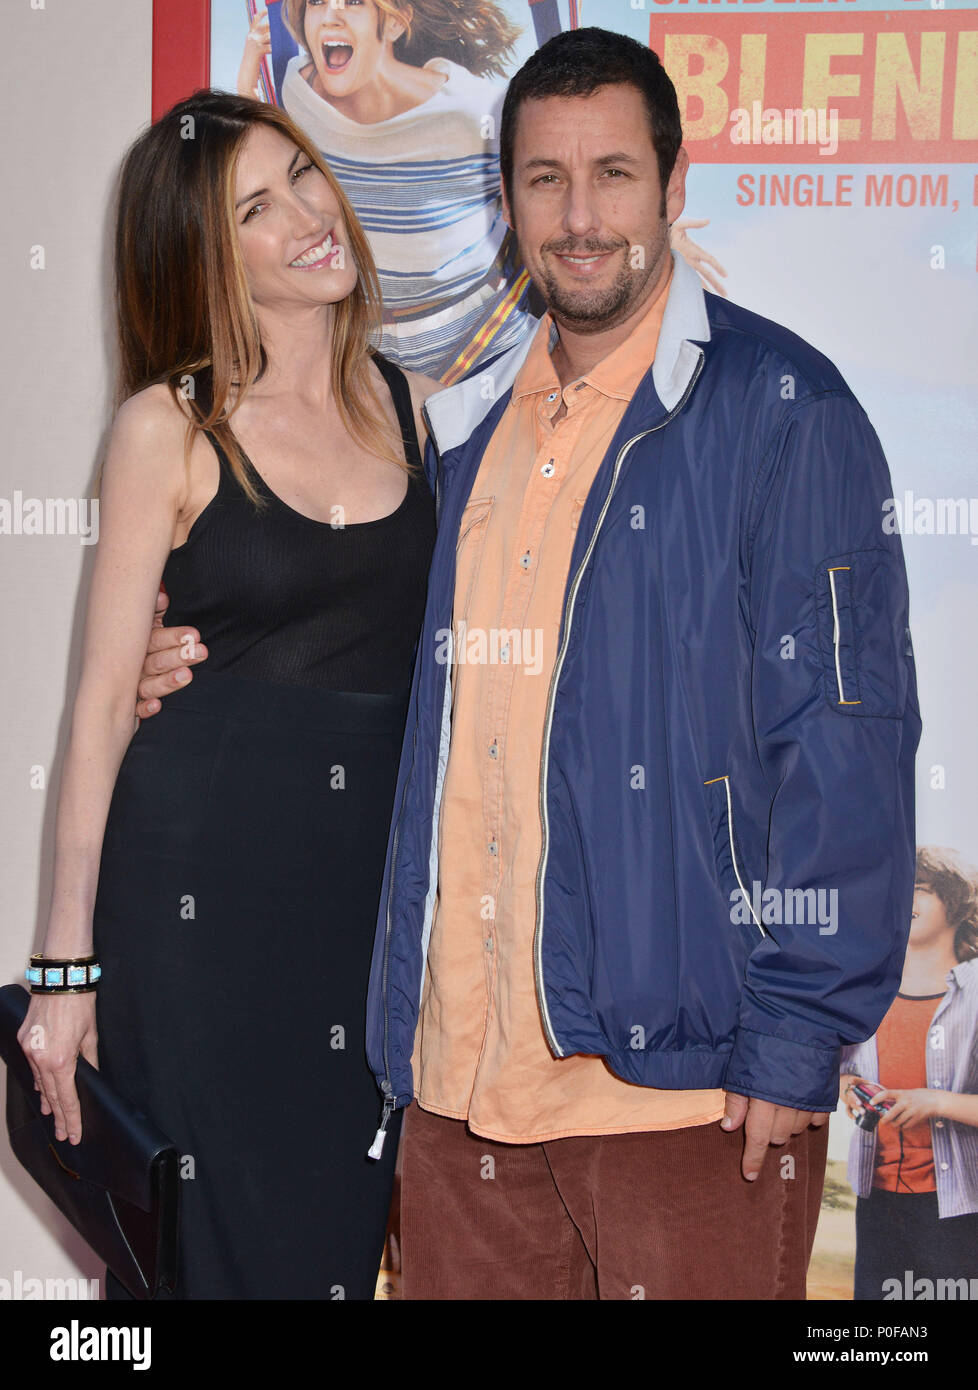 Jackie Sandler, Adam Sandler at the Blended Premiere at the Chinese